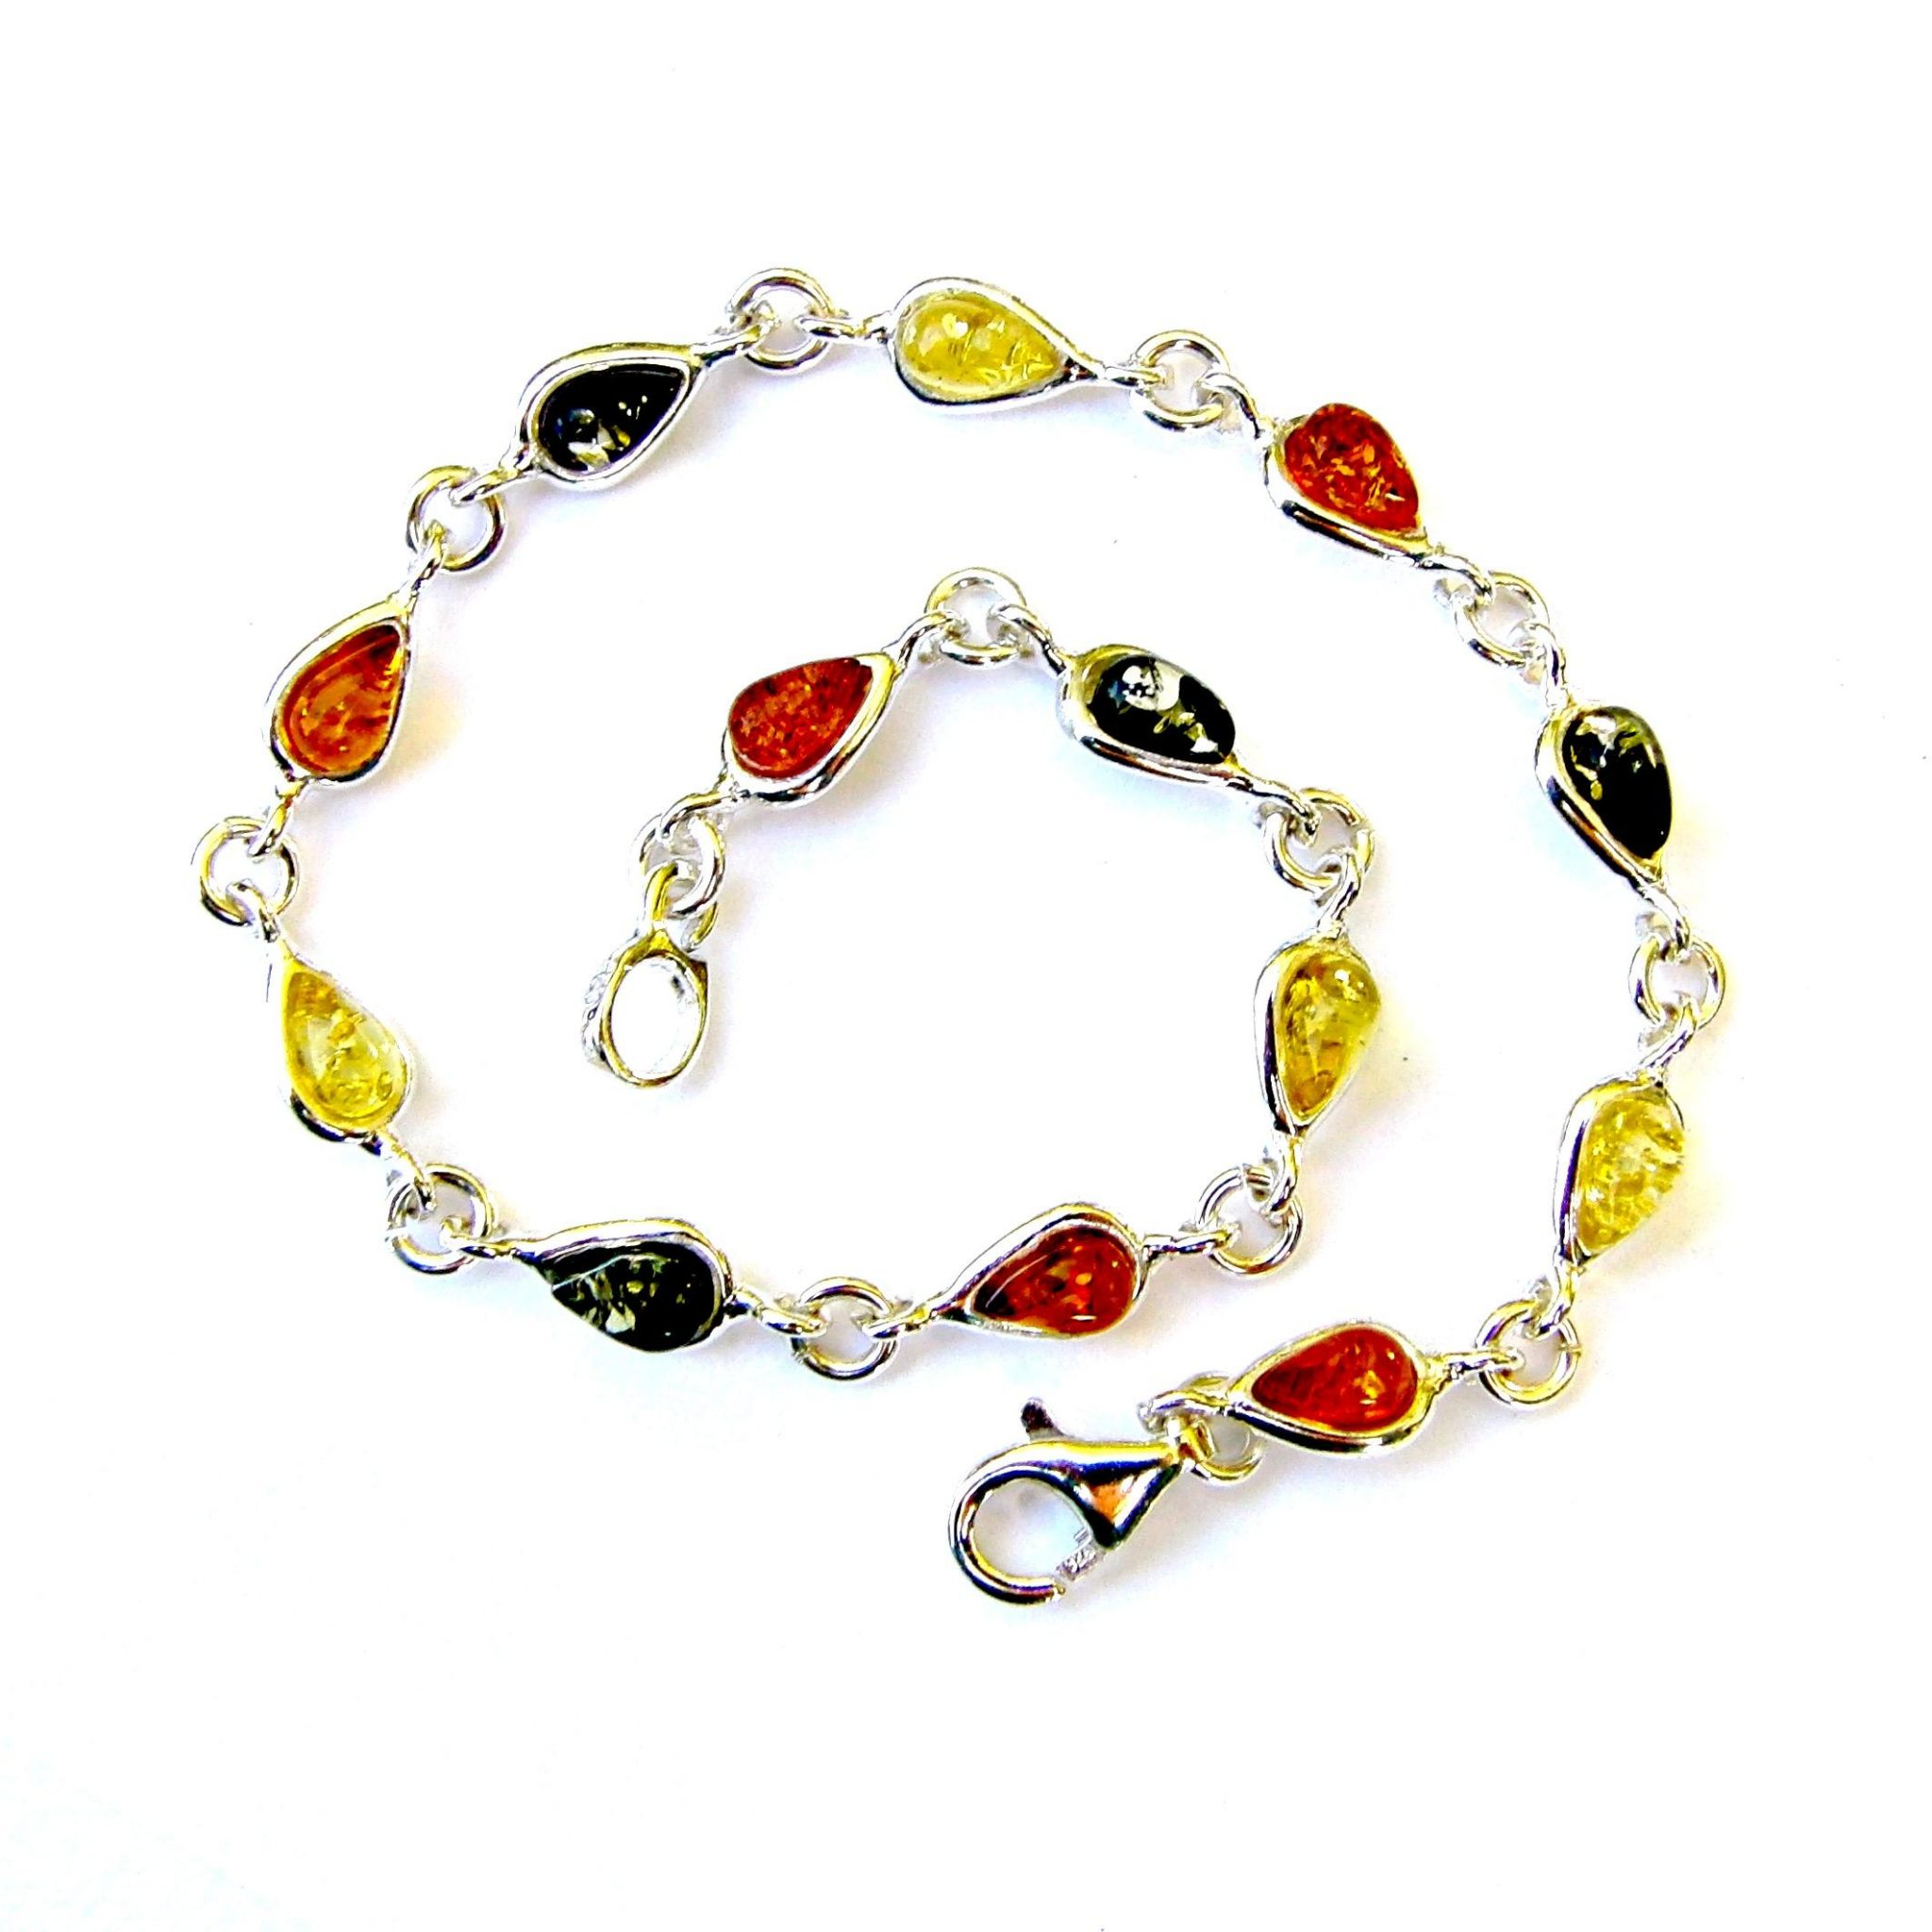 Beautiful Mixed Amber Dainty Cabochon Bracelet